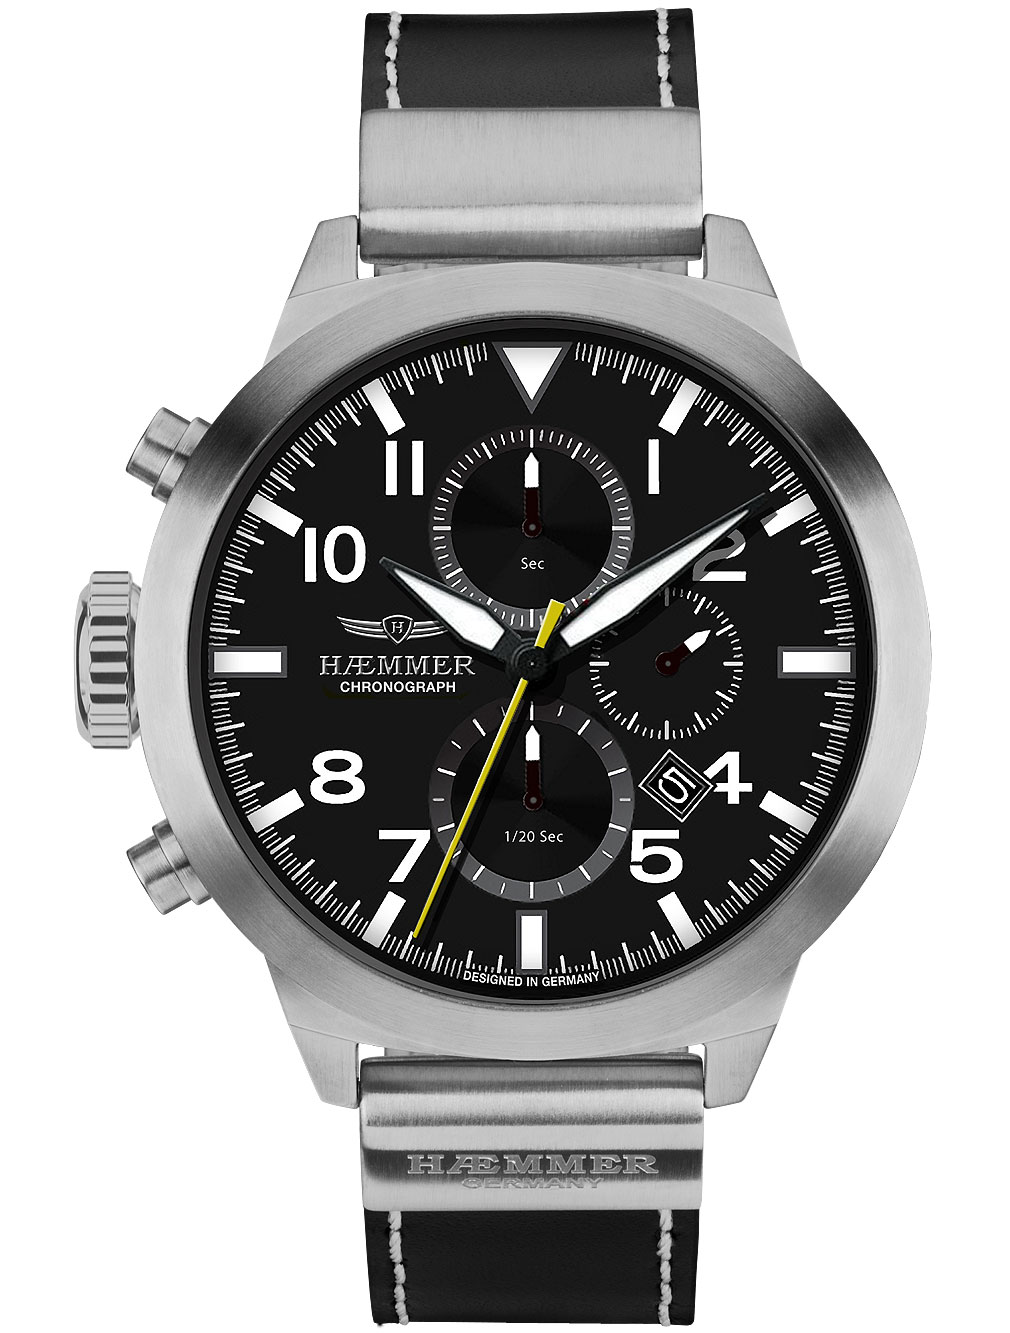 Image of Haemmer HF-01 Authentic Chronograph 50mm 10ATM